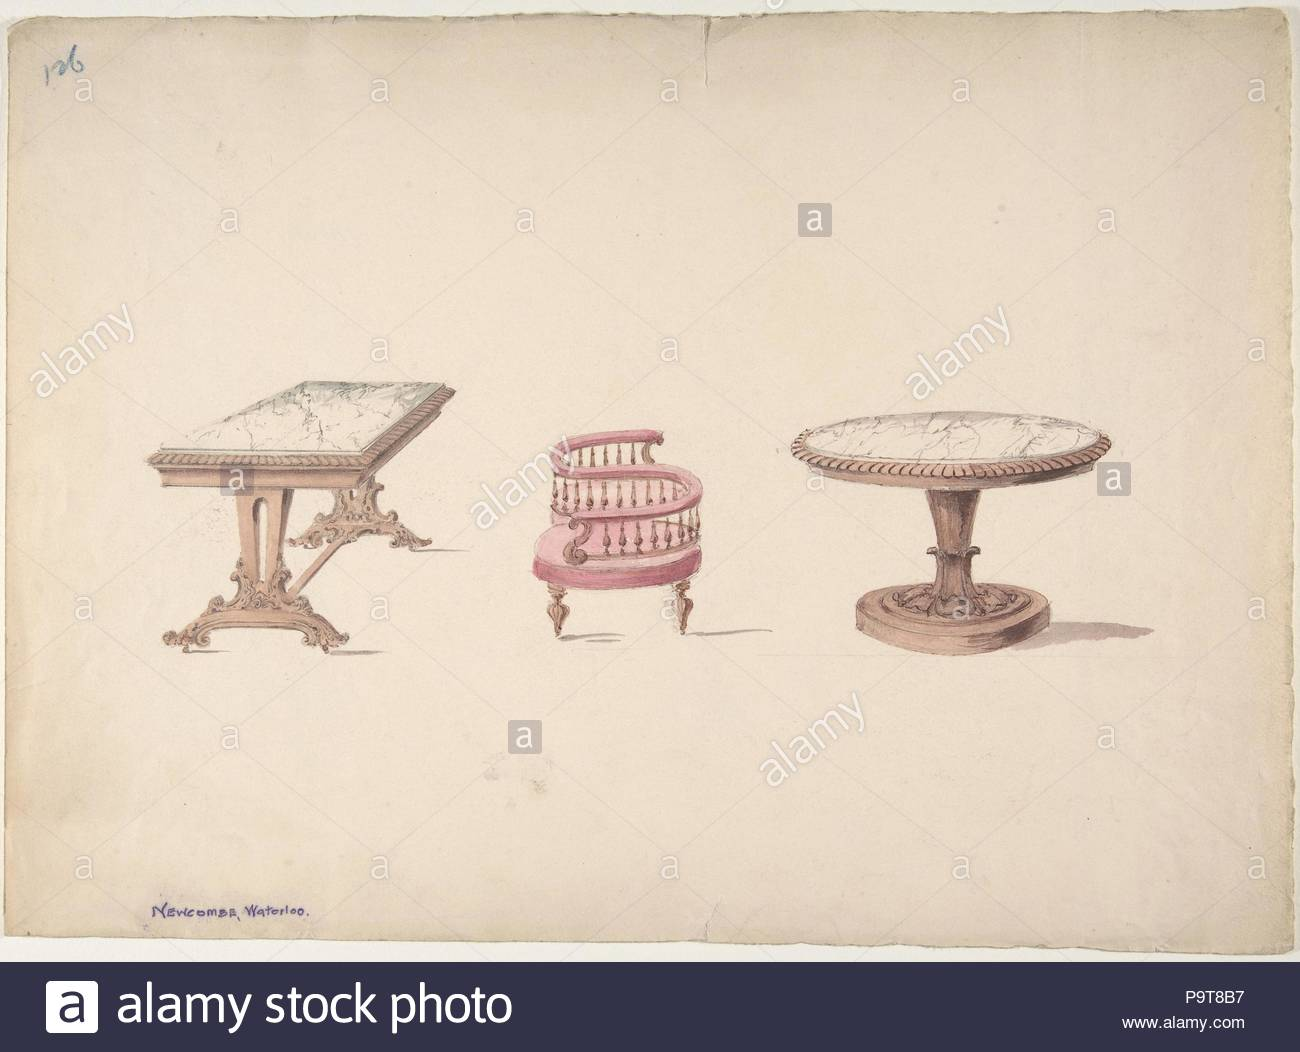 Design for a Rectangular and Round Marble-topped Tables and a Tête-à Tête Chair, early 19th century, Ink, watercolor and wash, sheet: 10 7/8 x 14 15/16 in. (27.6 x 38 cm), Anonymous, British, 19th century. - Stock Image